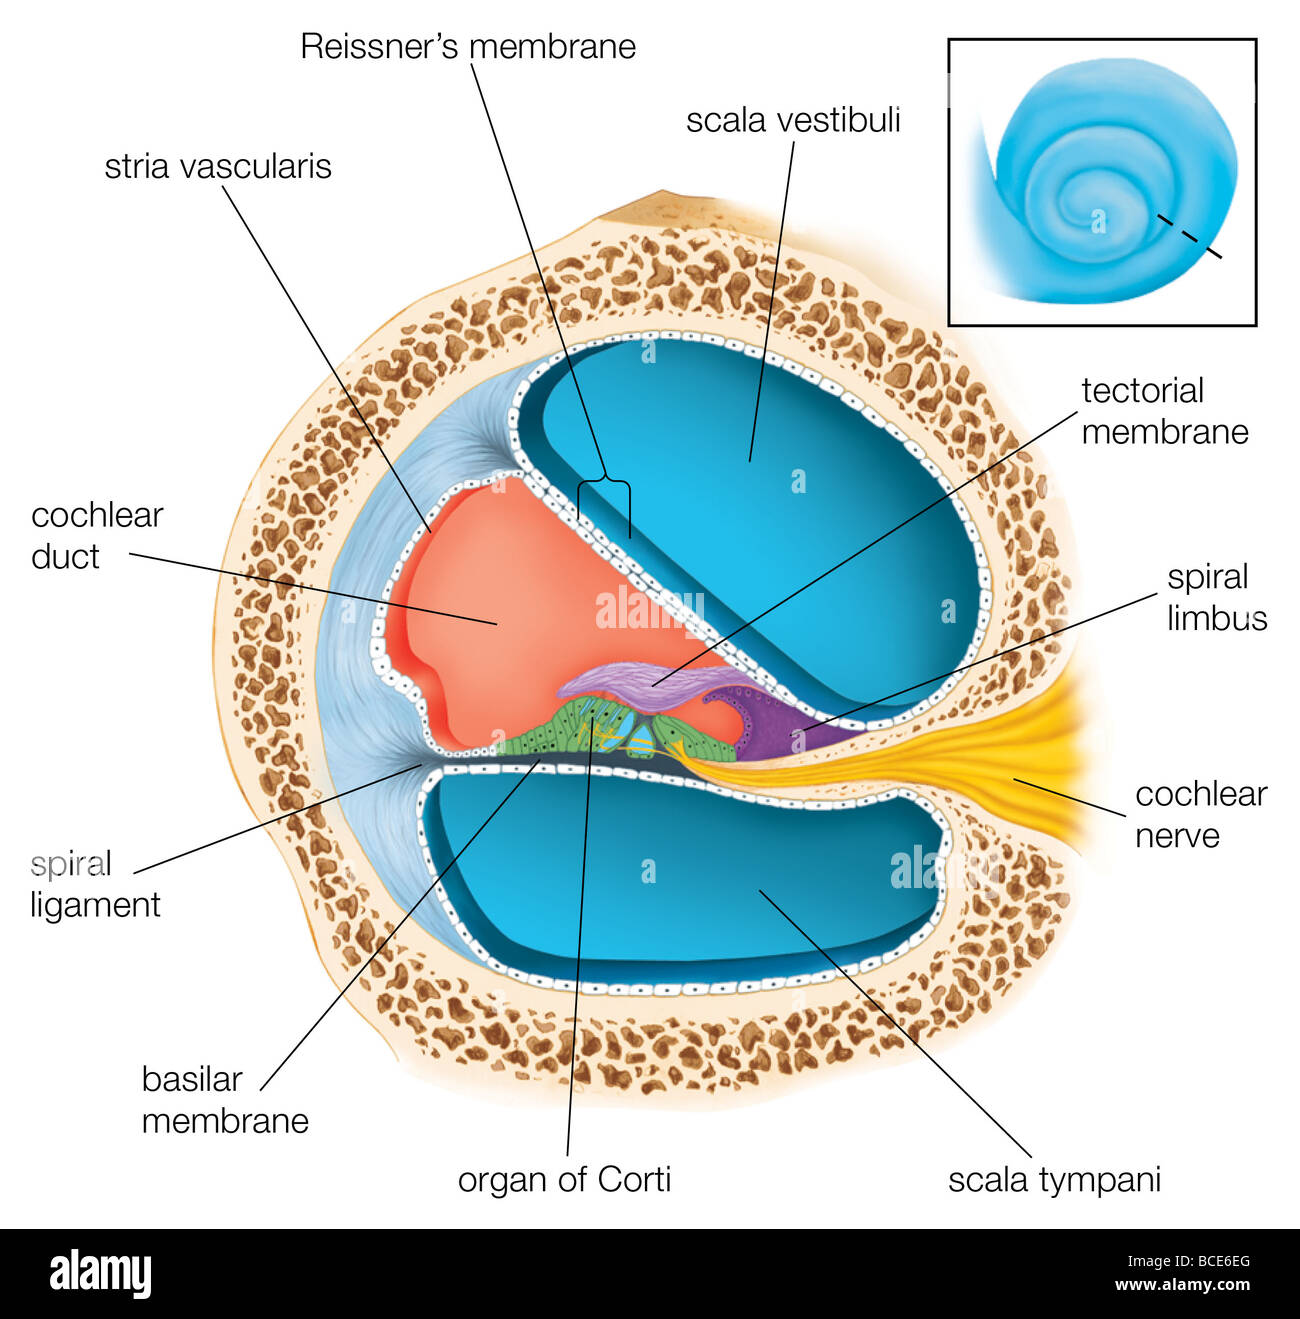 Anatomy of the cochlea